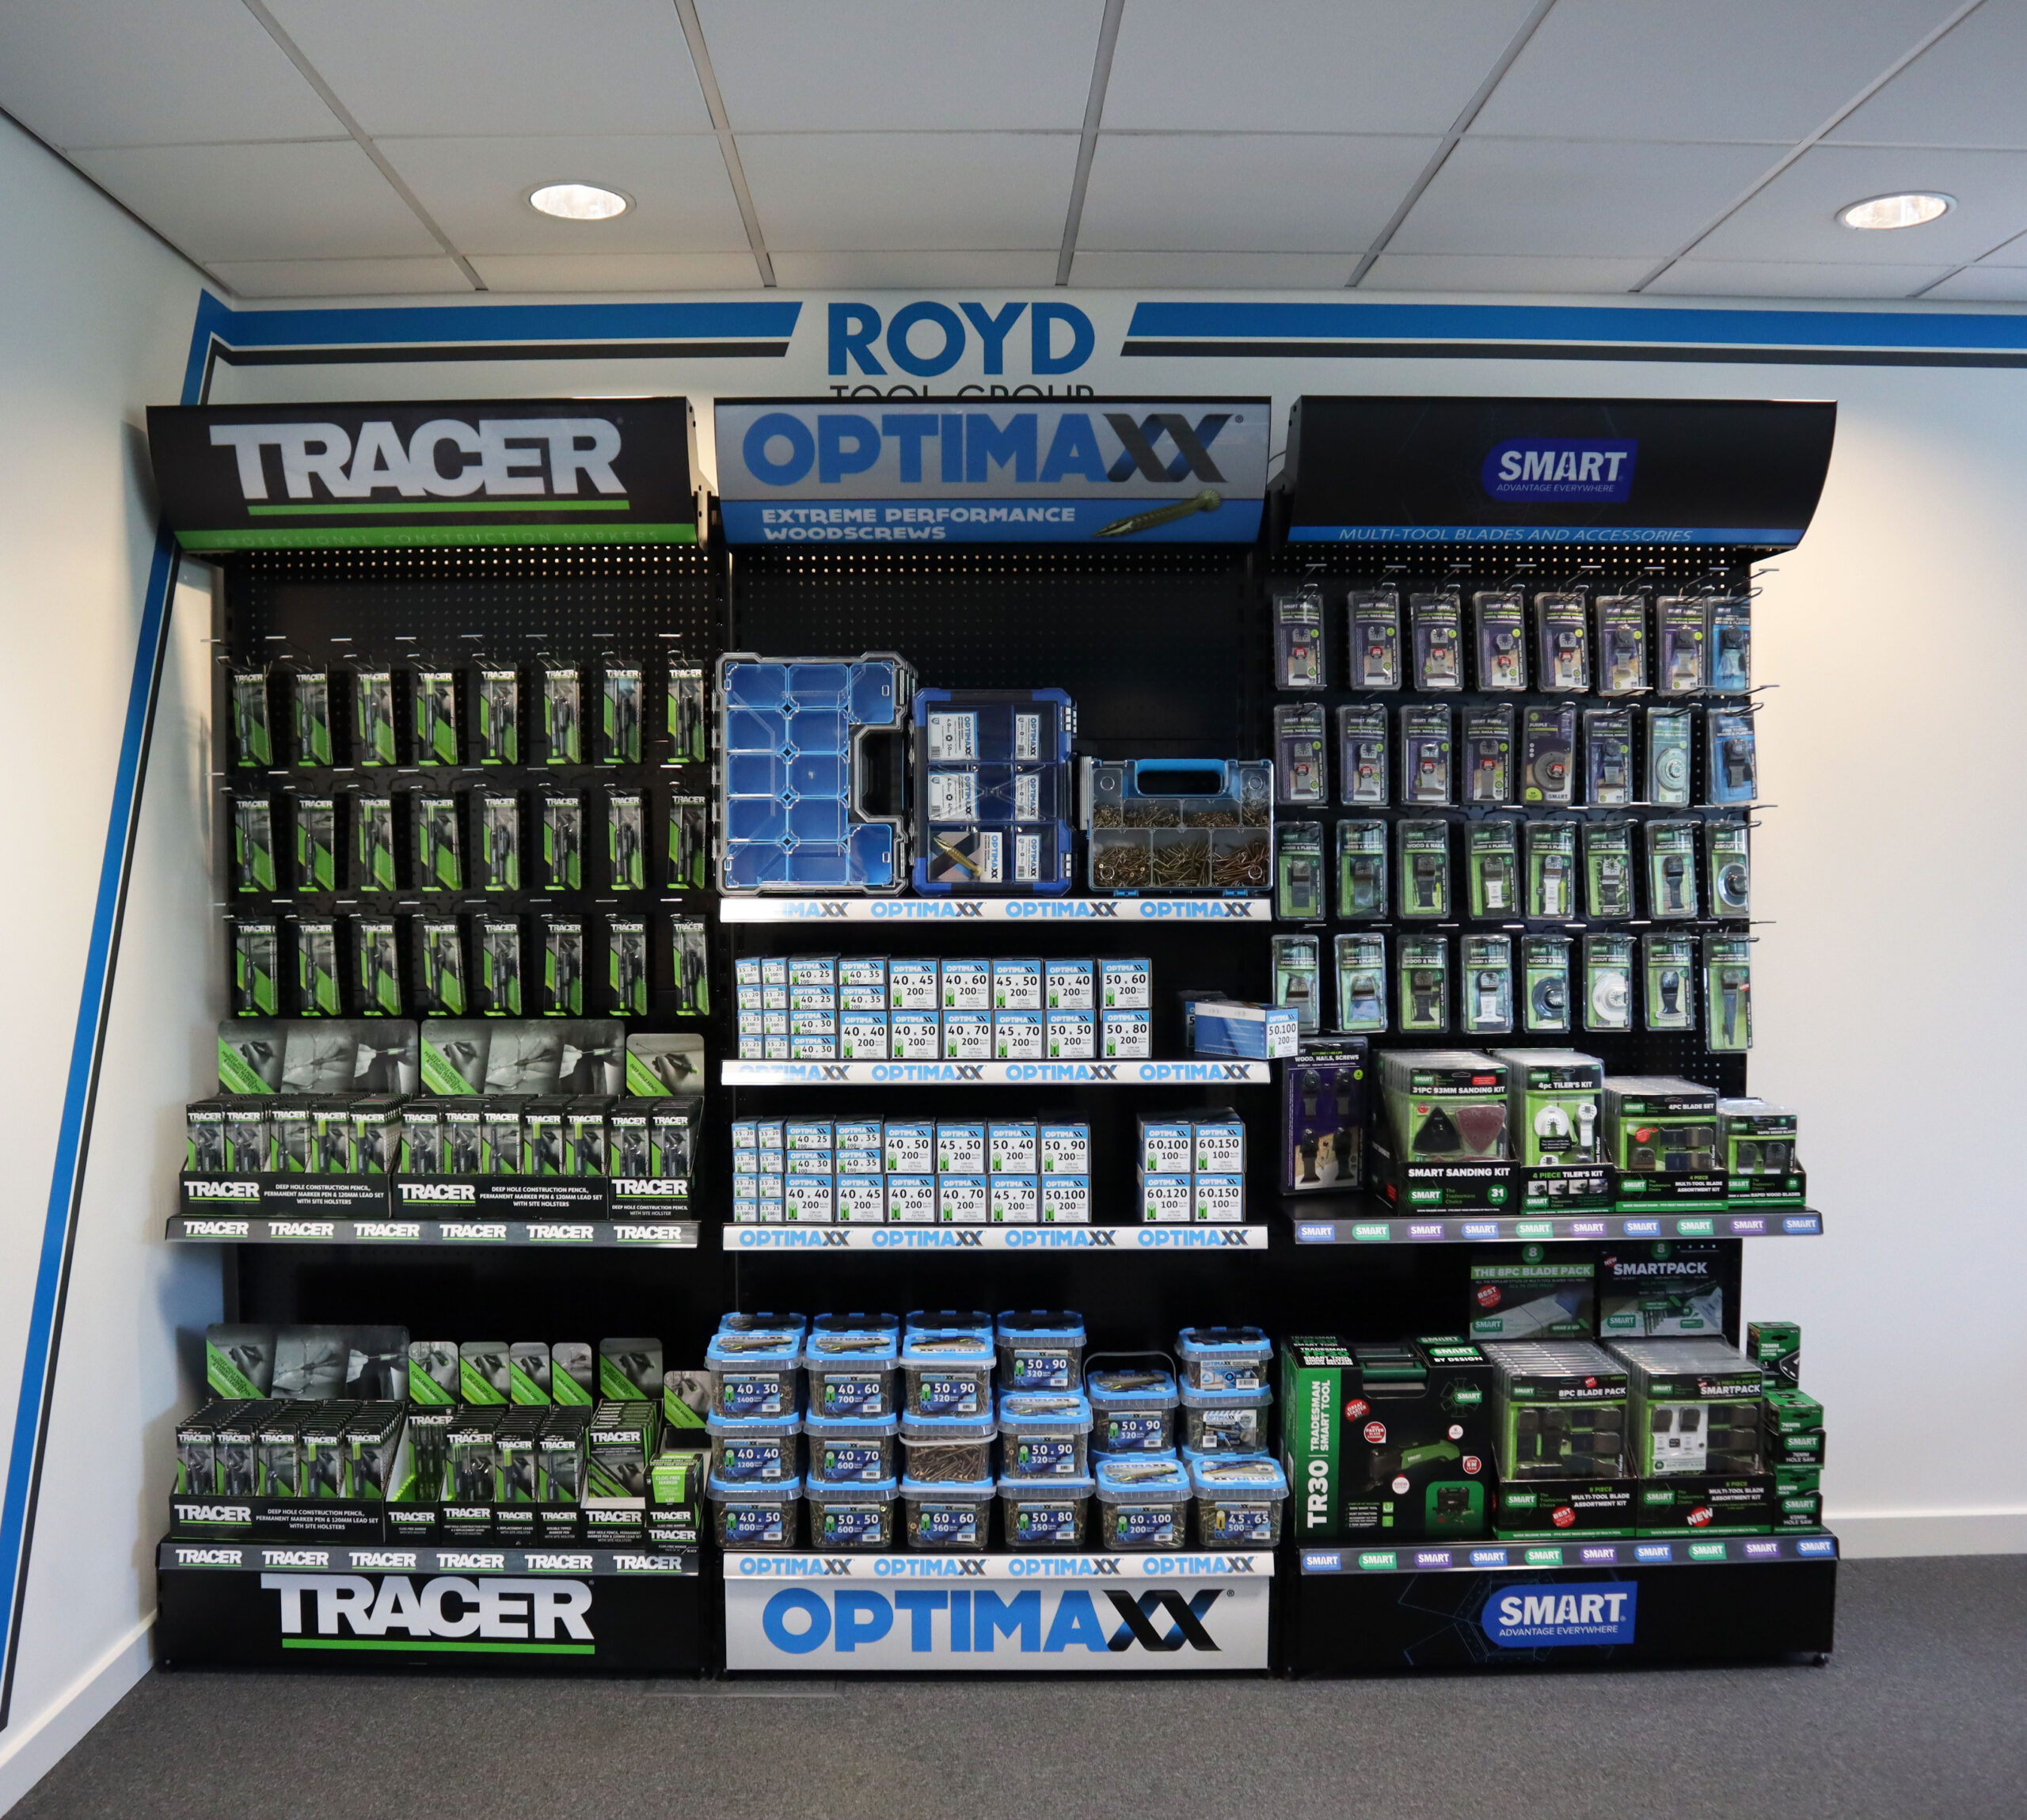 ROYD Tool Group products